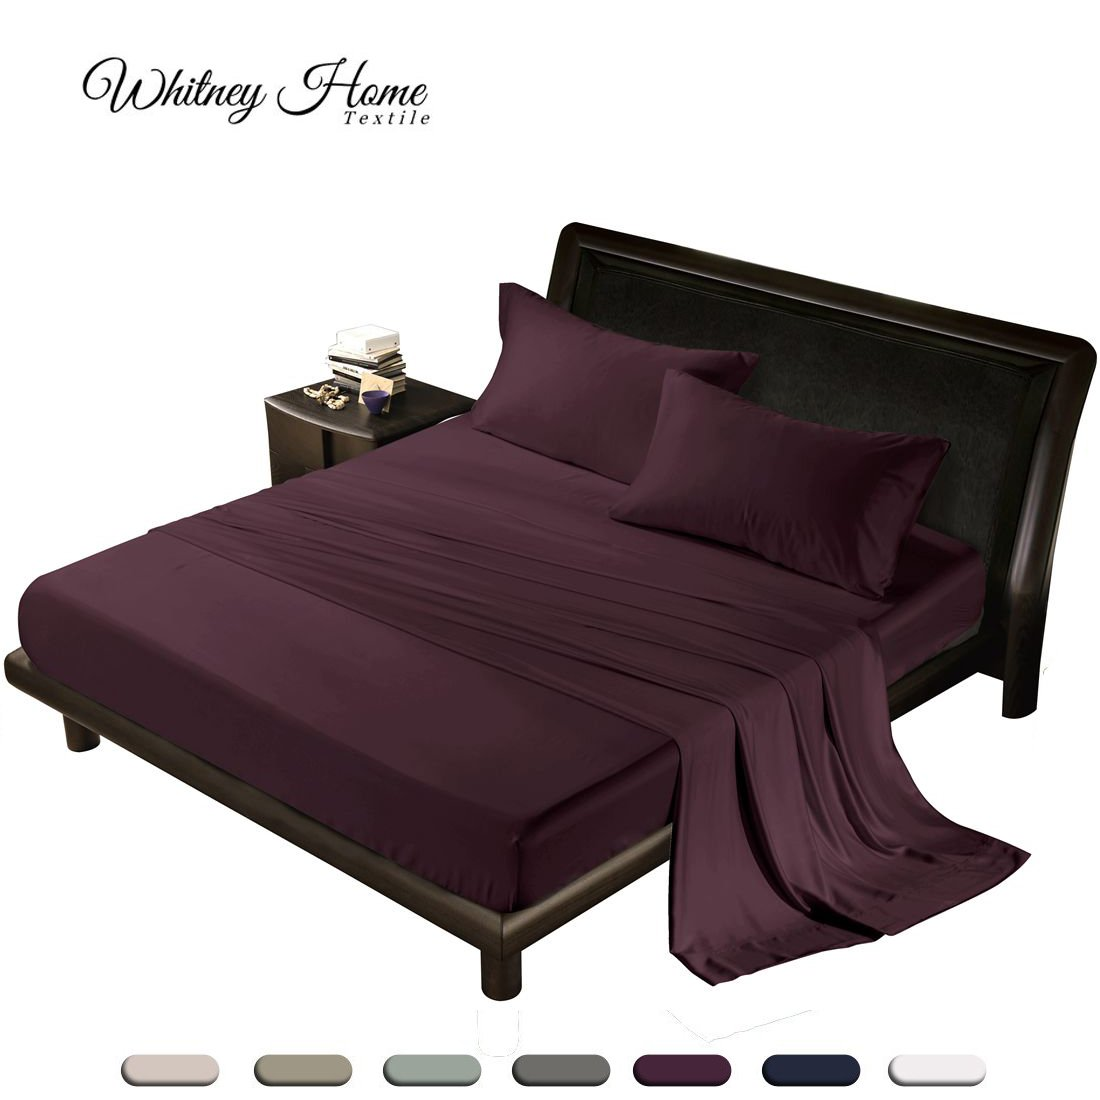 Natural Quality 100% Tencel from Eucalyptus Wood Pulp Bed Sheet 4-Piece Set - Eco-friendly, Refreshing & Silky Soft Fiber, Hypoallergenic, Mist & Odors Resistant Bedding, Burgundy King by Whitney Home Textile (Image #1)